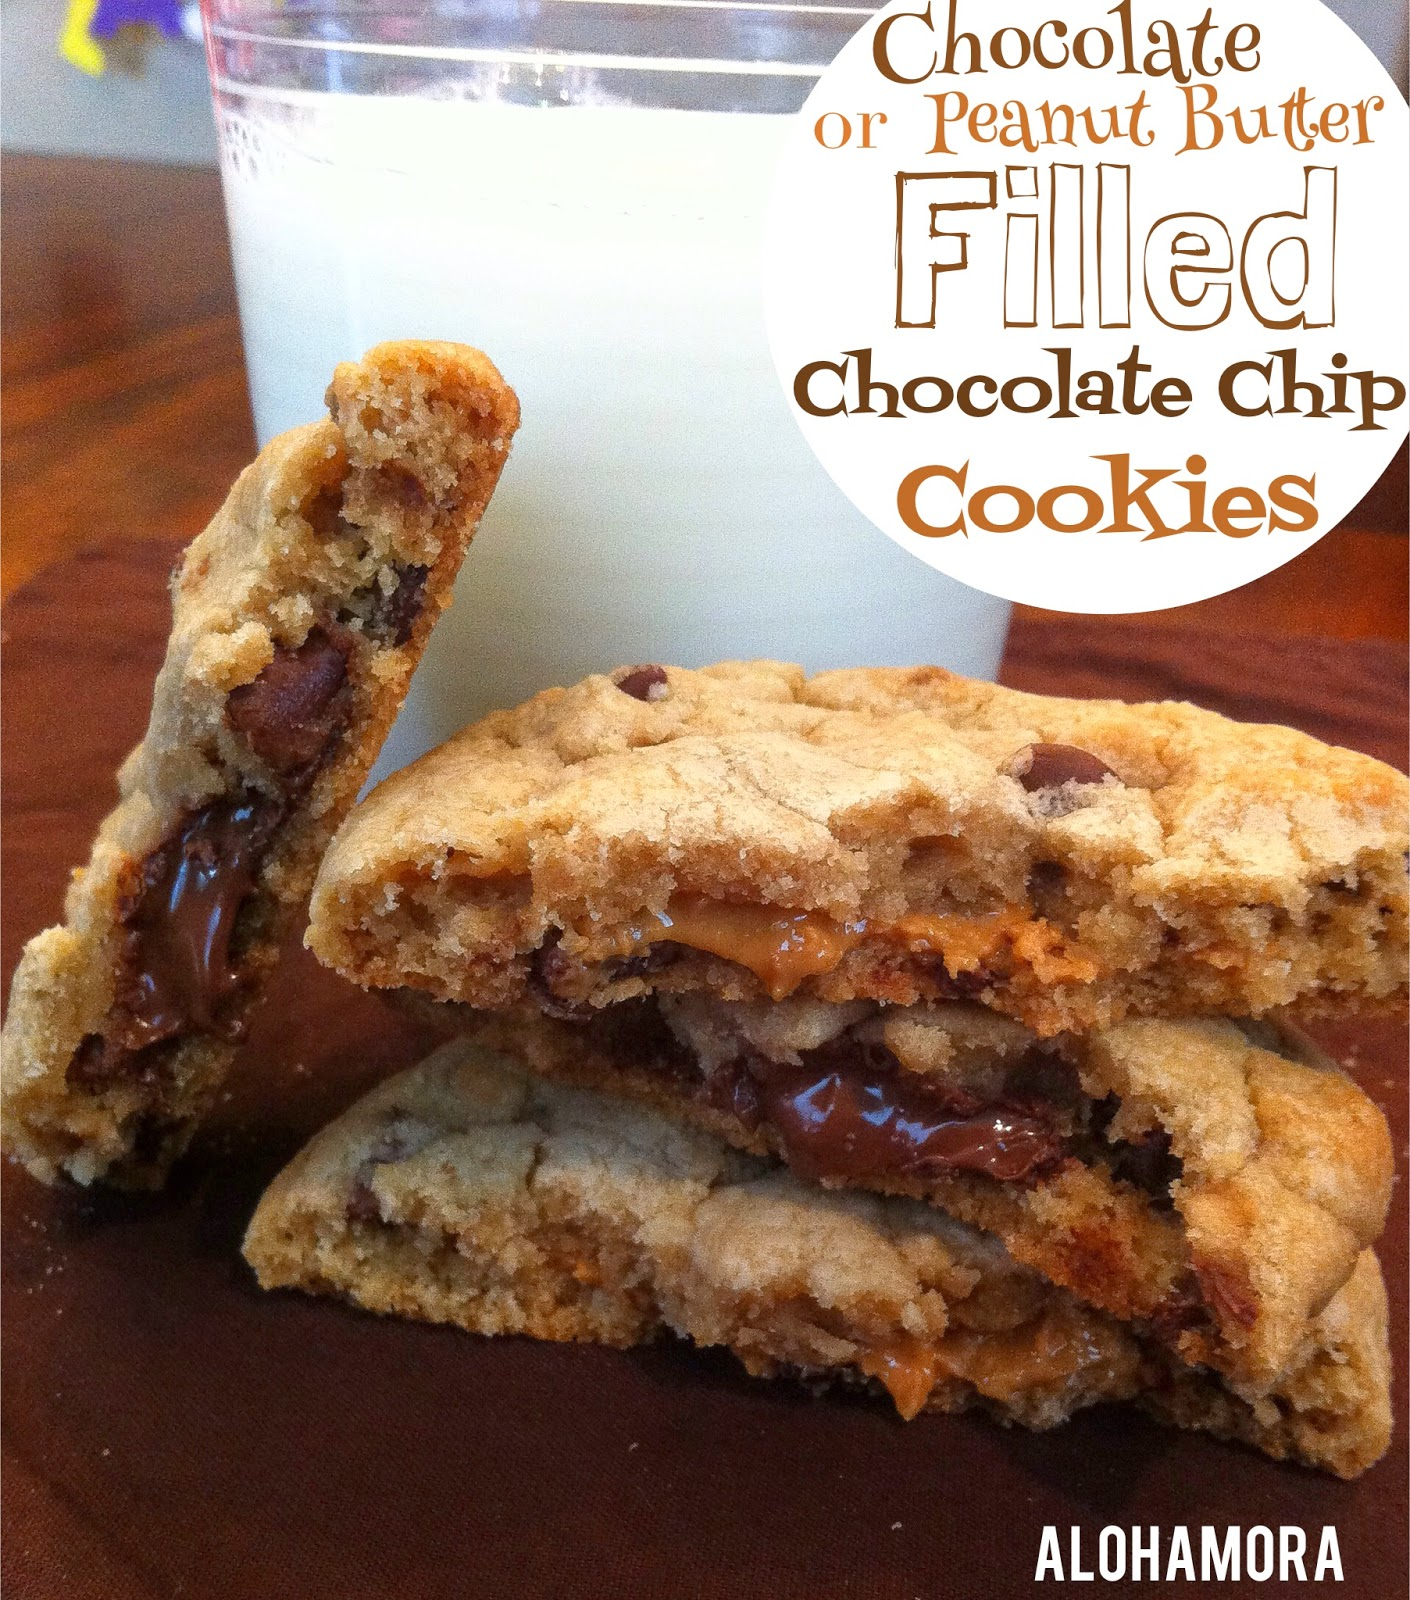 Chocolate or peanut butter FILLED chocolate chip cookies.  B/c a little extra fun in a cookie is always nice. Alohamora Open a Book http://alohamoraopenabook.blogspot.com/